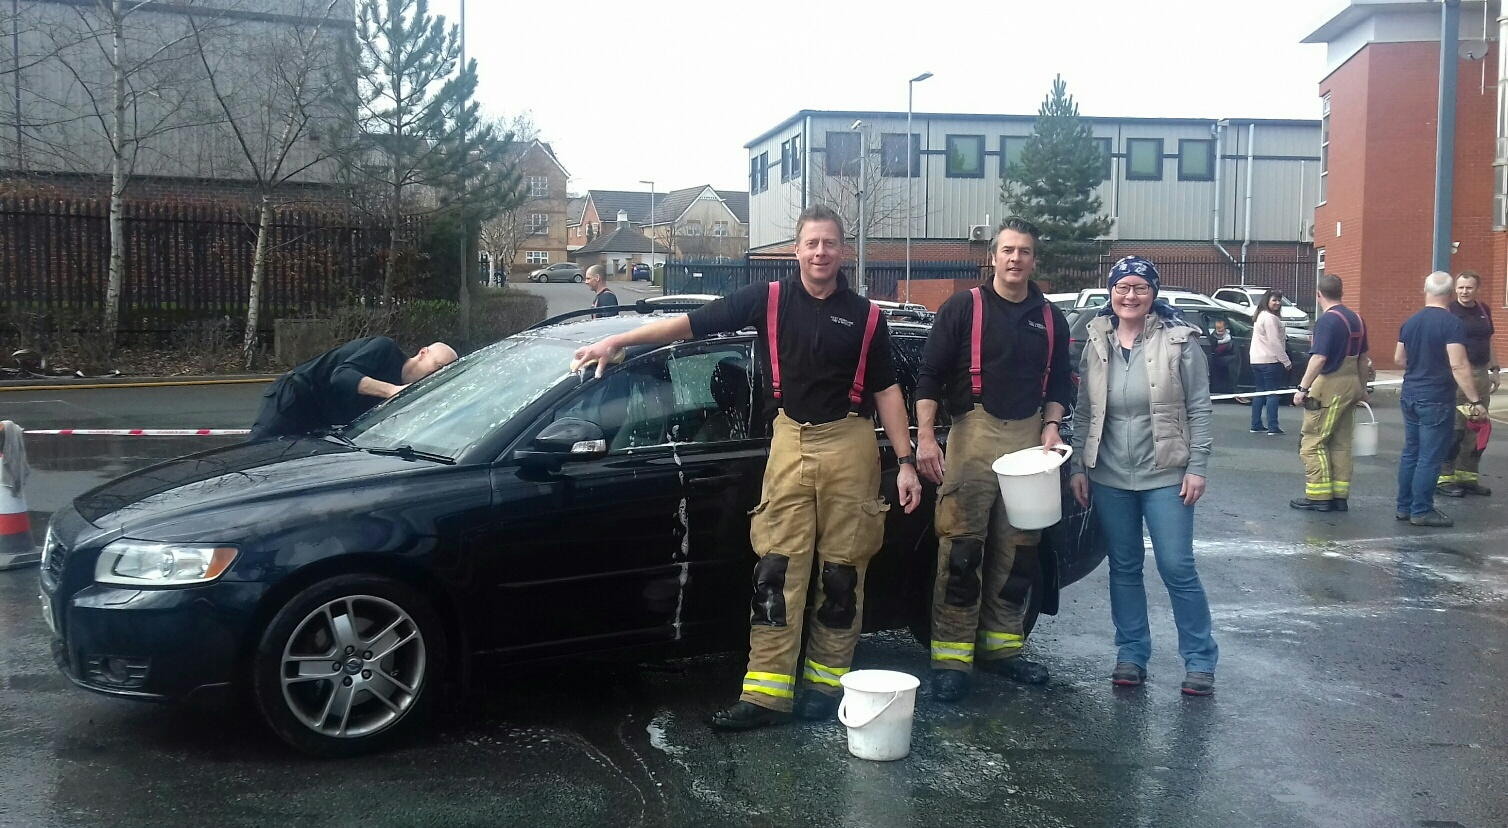 Wendy Wolstenholme with firefighters at Stanningley fire station's car wash